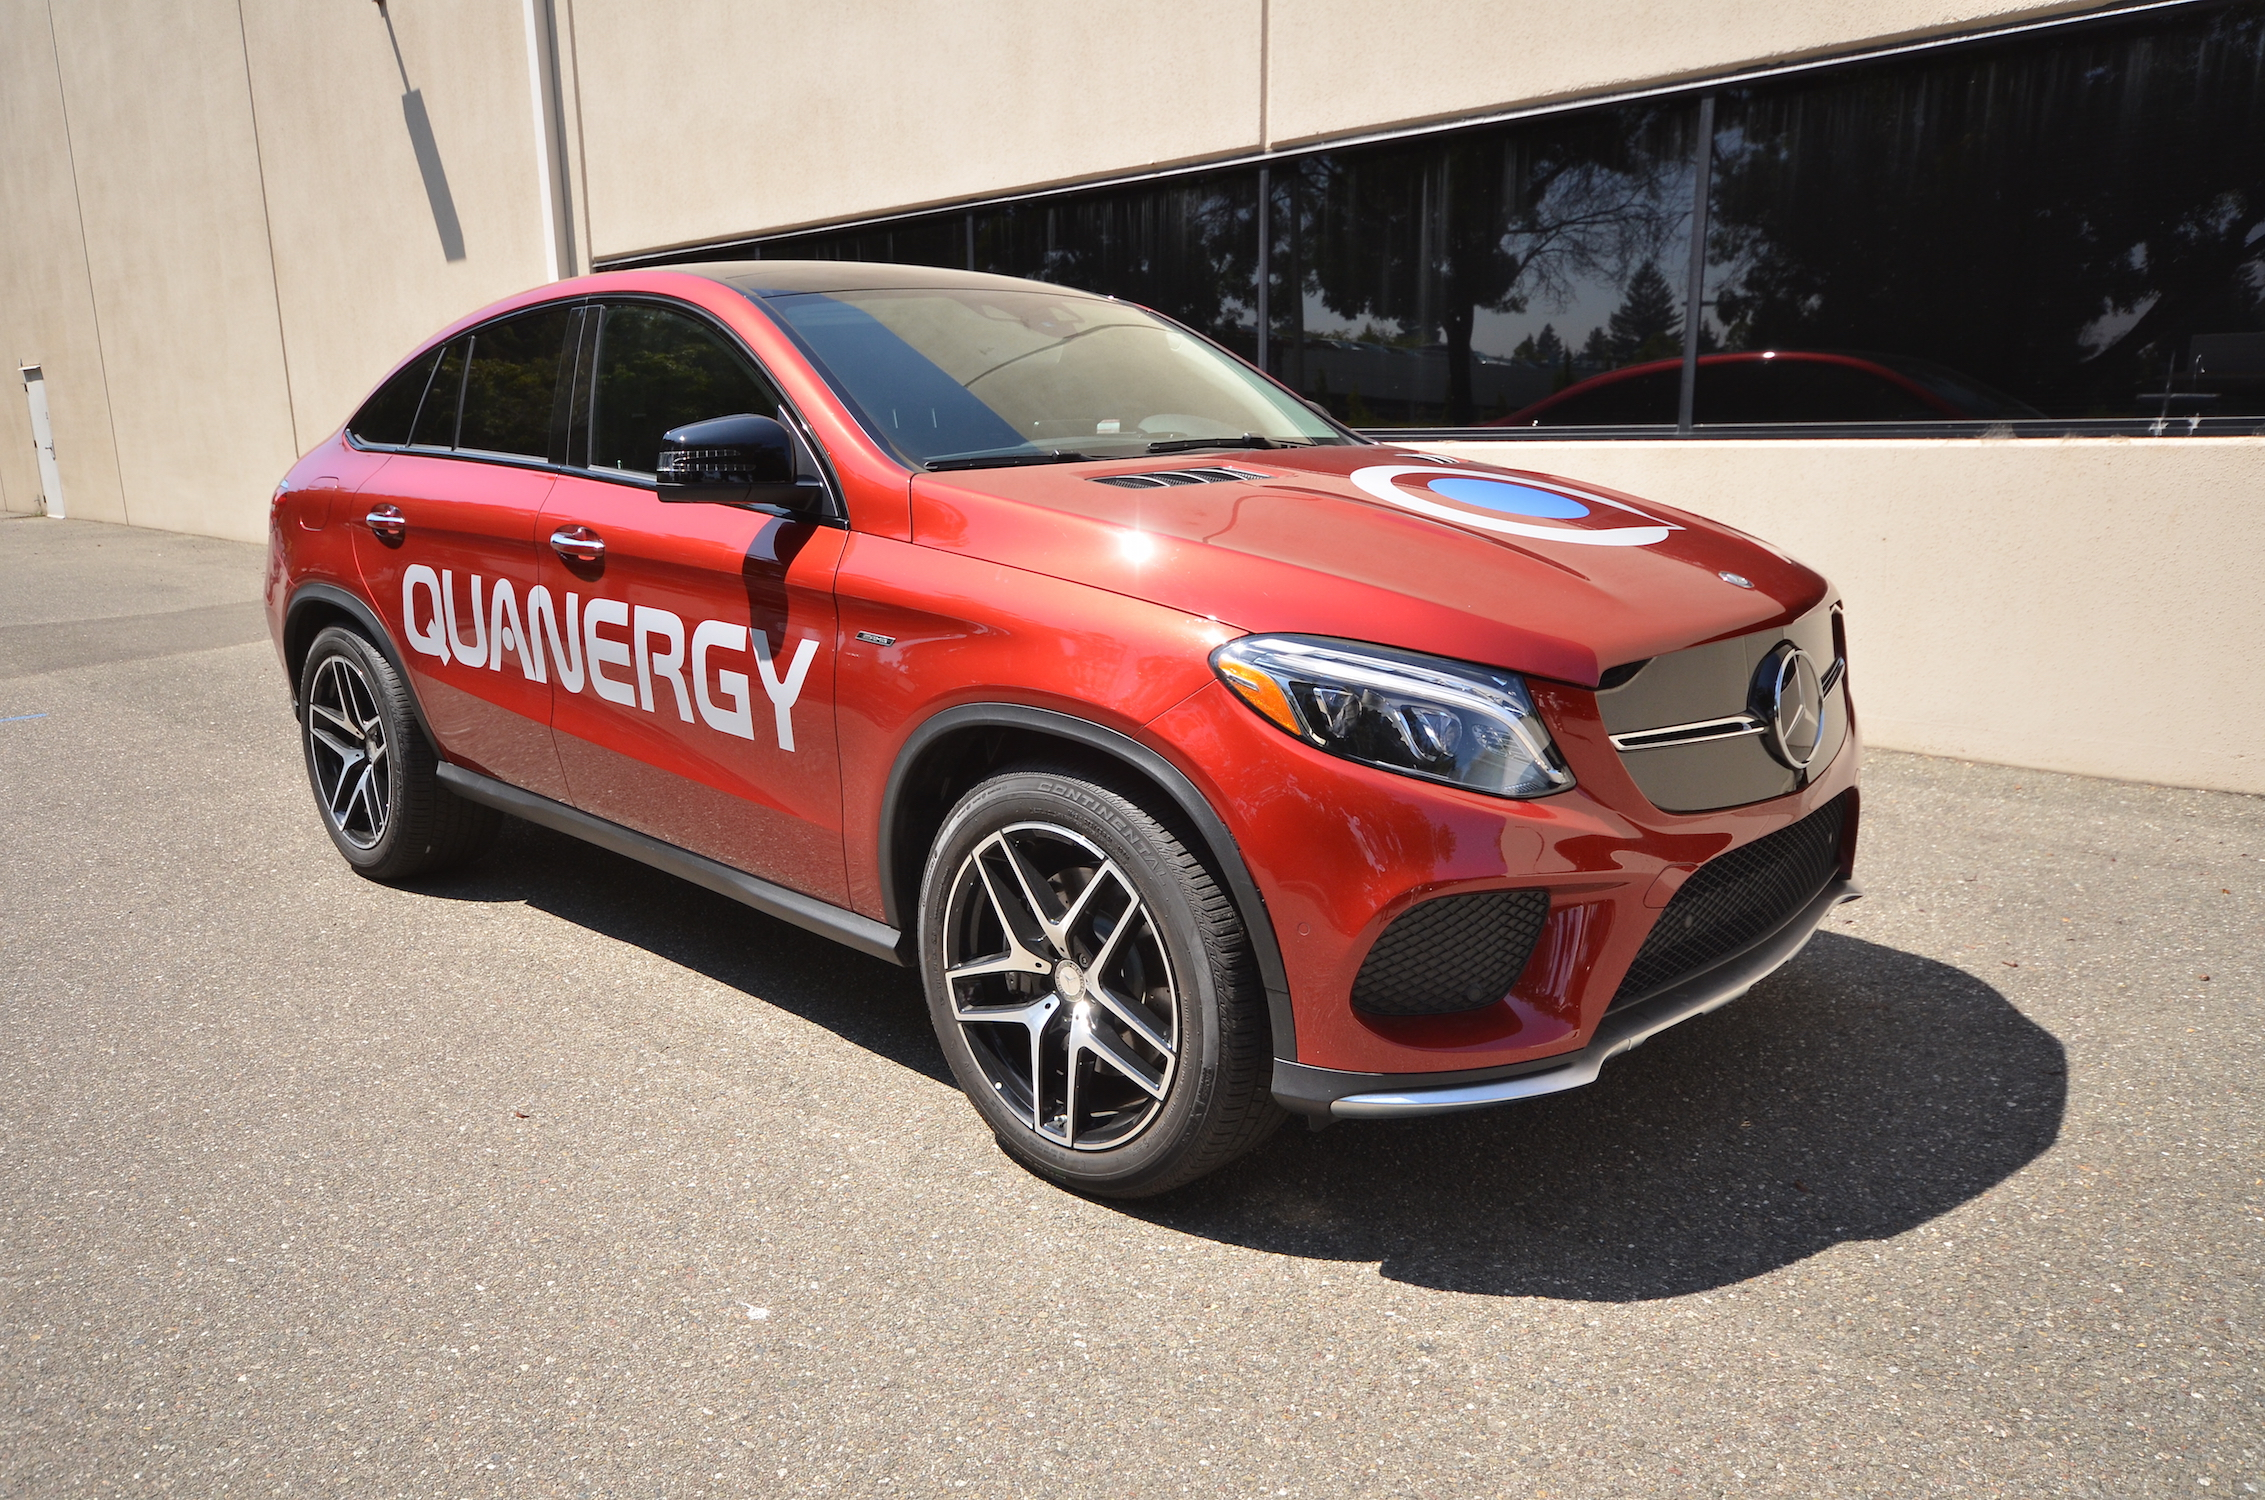 Quanergy's solid state LiDAR sensors are in this Mercedes.